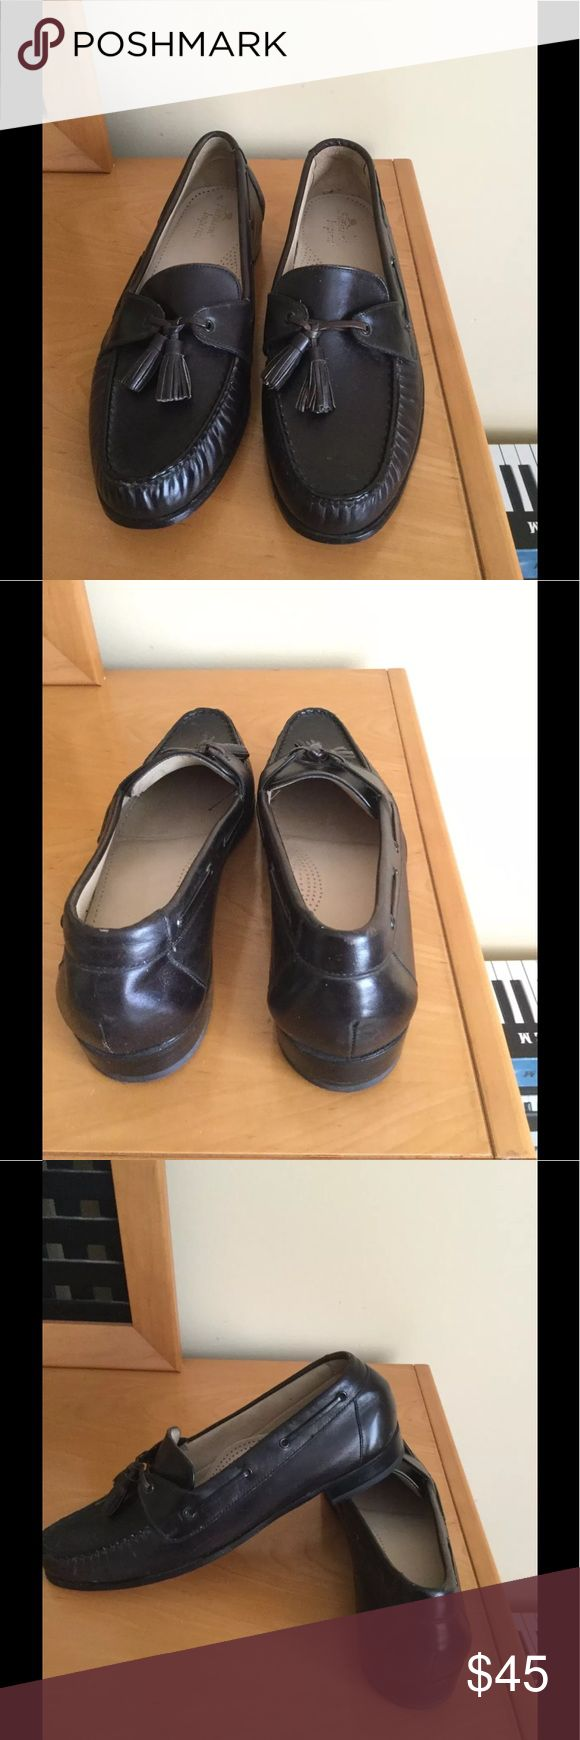 Florsheim Imperial brown tassel dress shoes Like new condition , never been worn outdoors , some water spots on a one shoe ( can be fixed with shoe cream etc.) Sz 9 C Price firm ❌ Florsheim Shoes Loafers & Slip-Ons